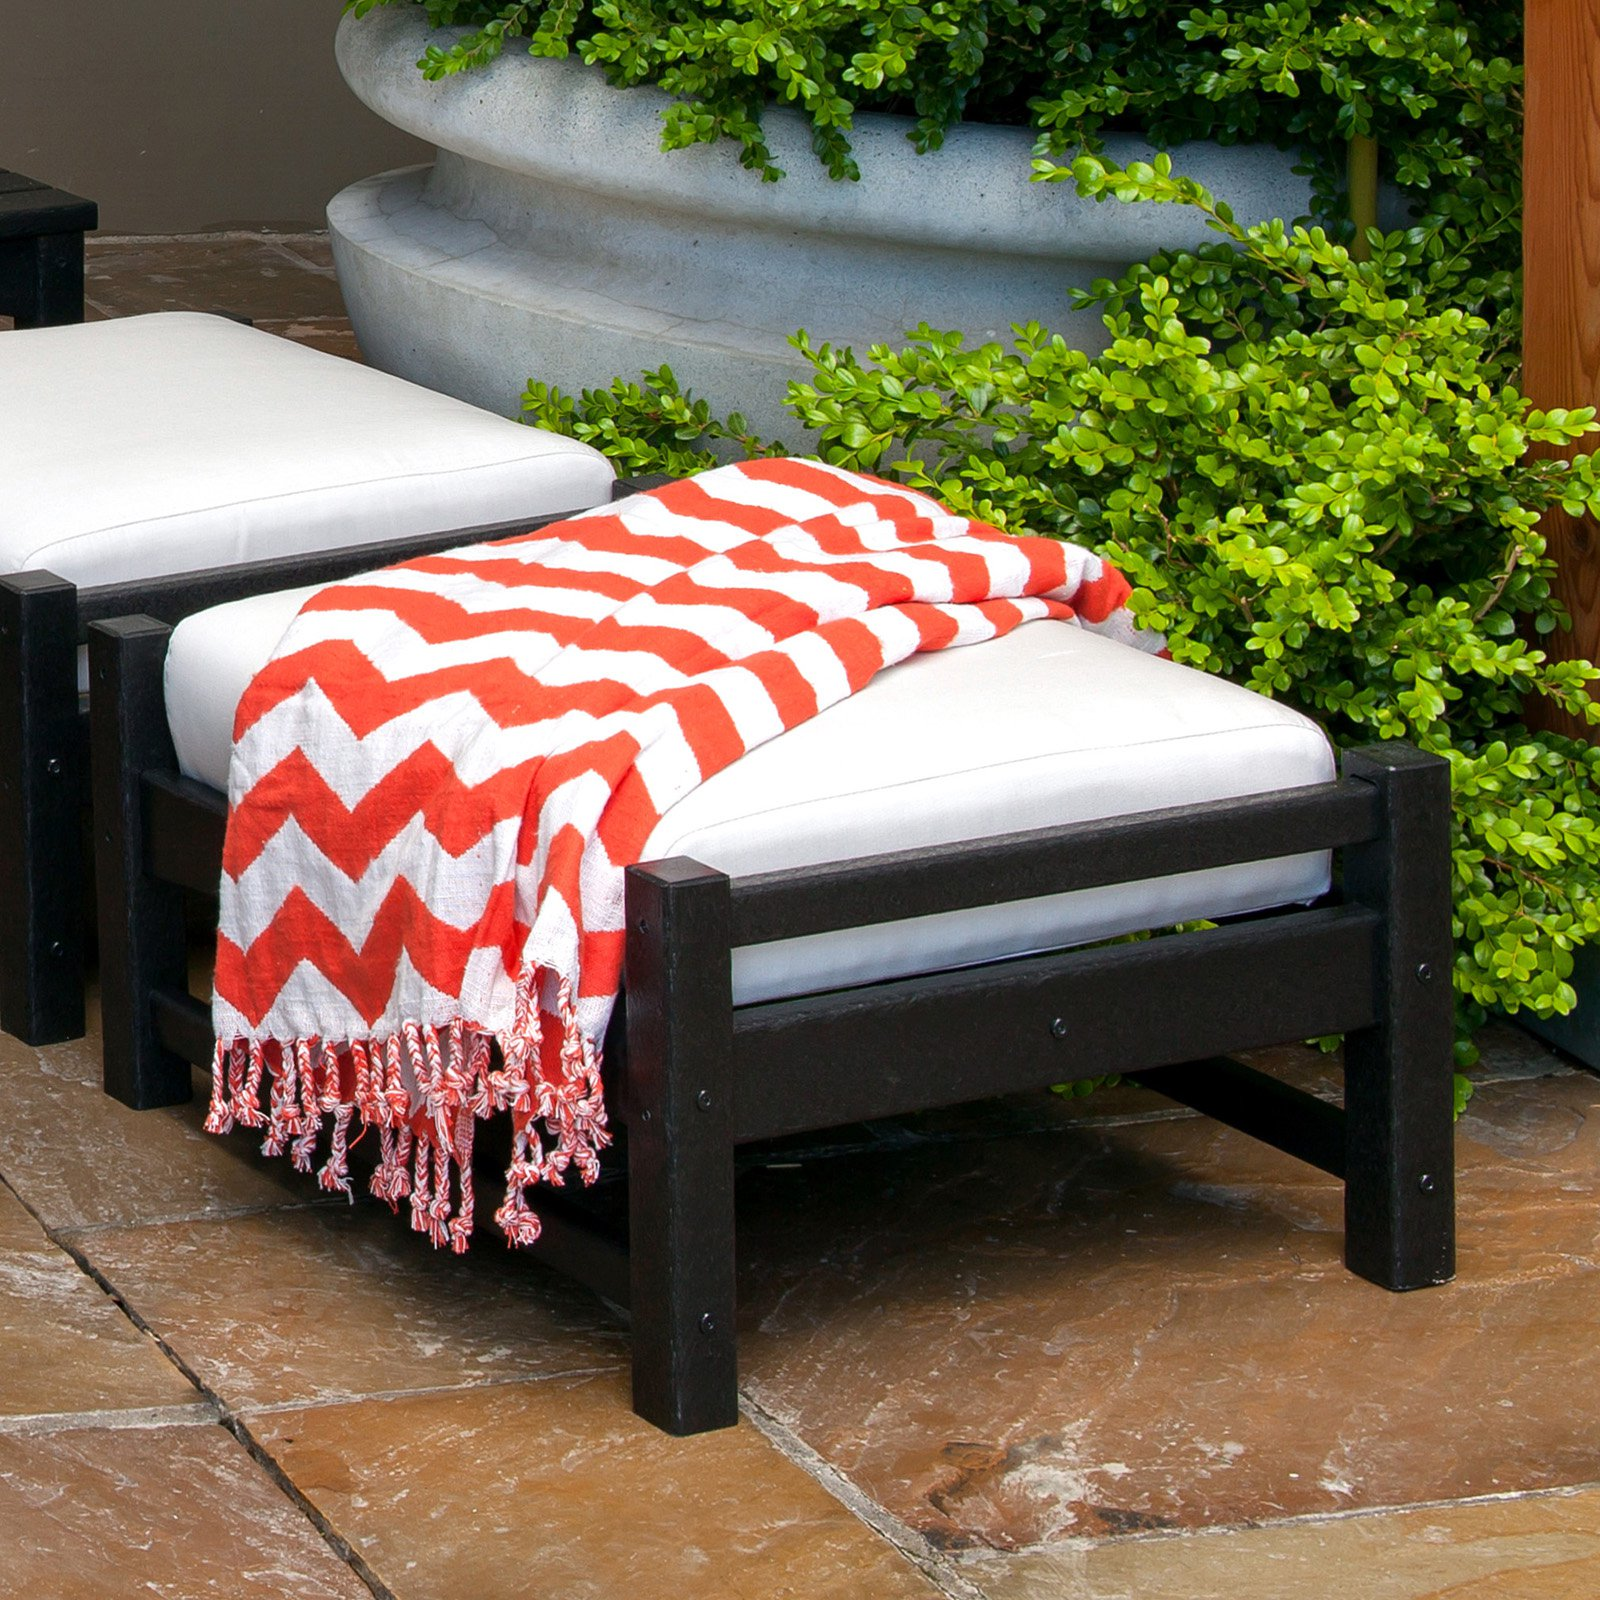 POLYWOOD Club Ottoman - Black / Birds Eye